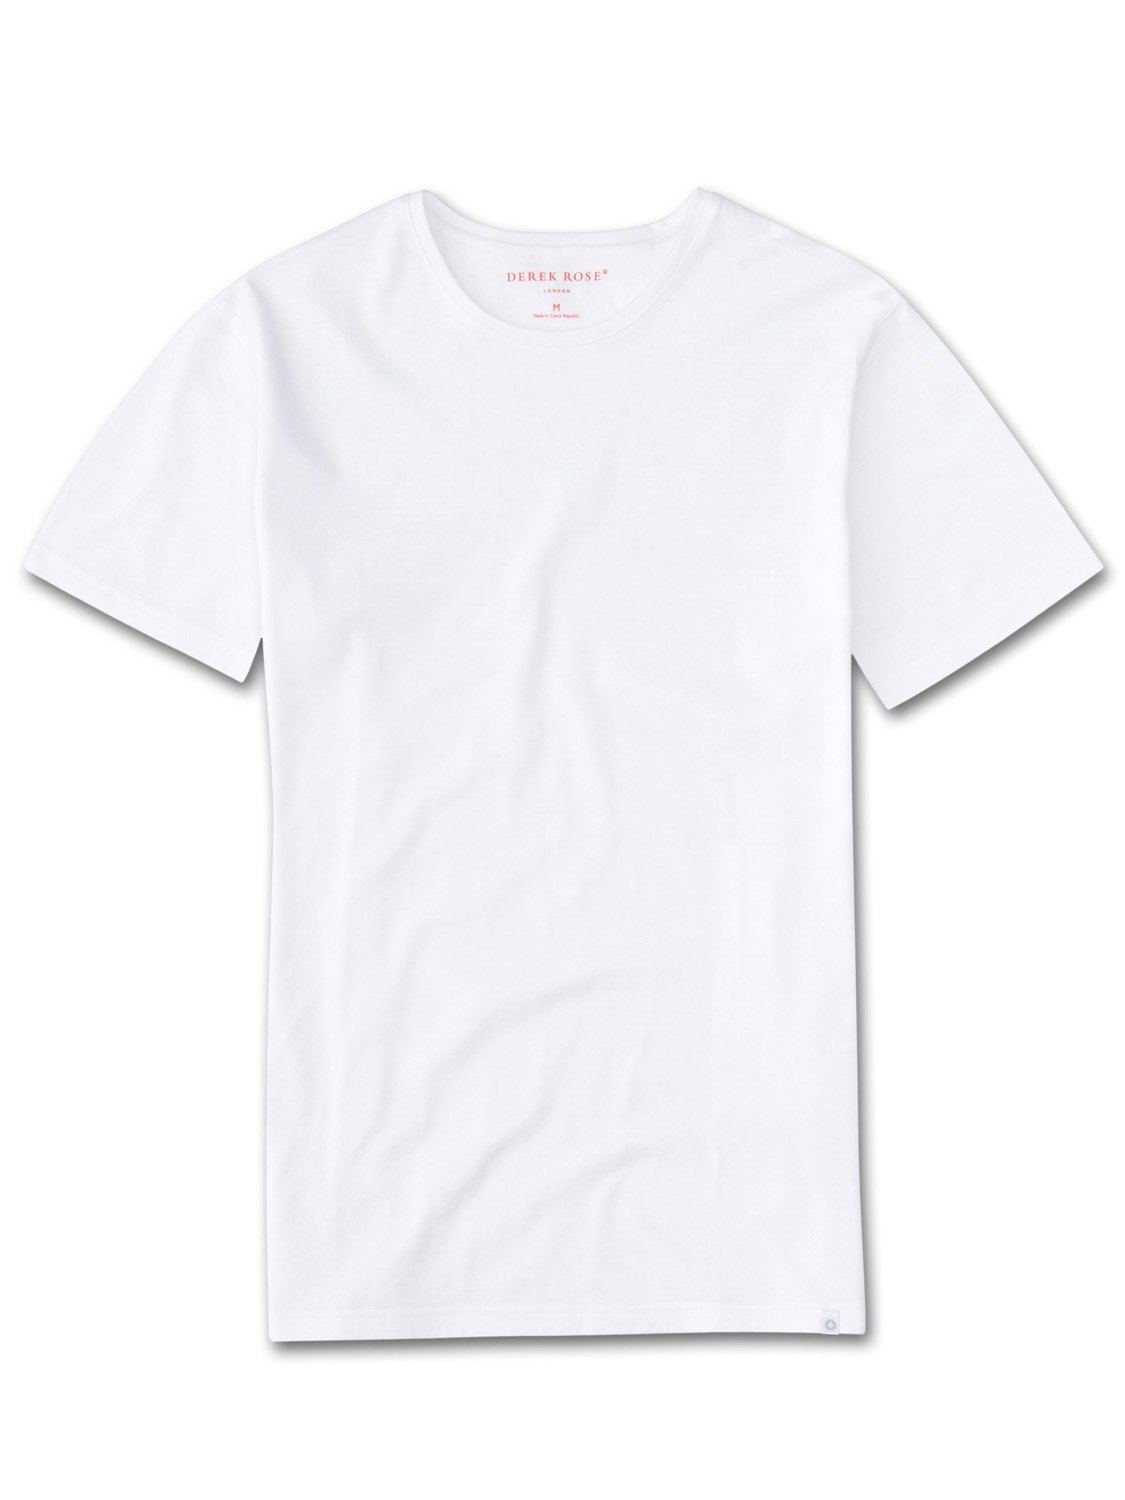 Men's Short Sleeve T-Shirt Turner Carbon-Brushed Cotton White